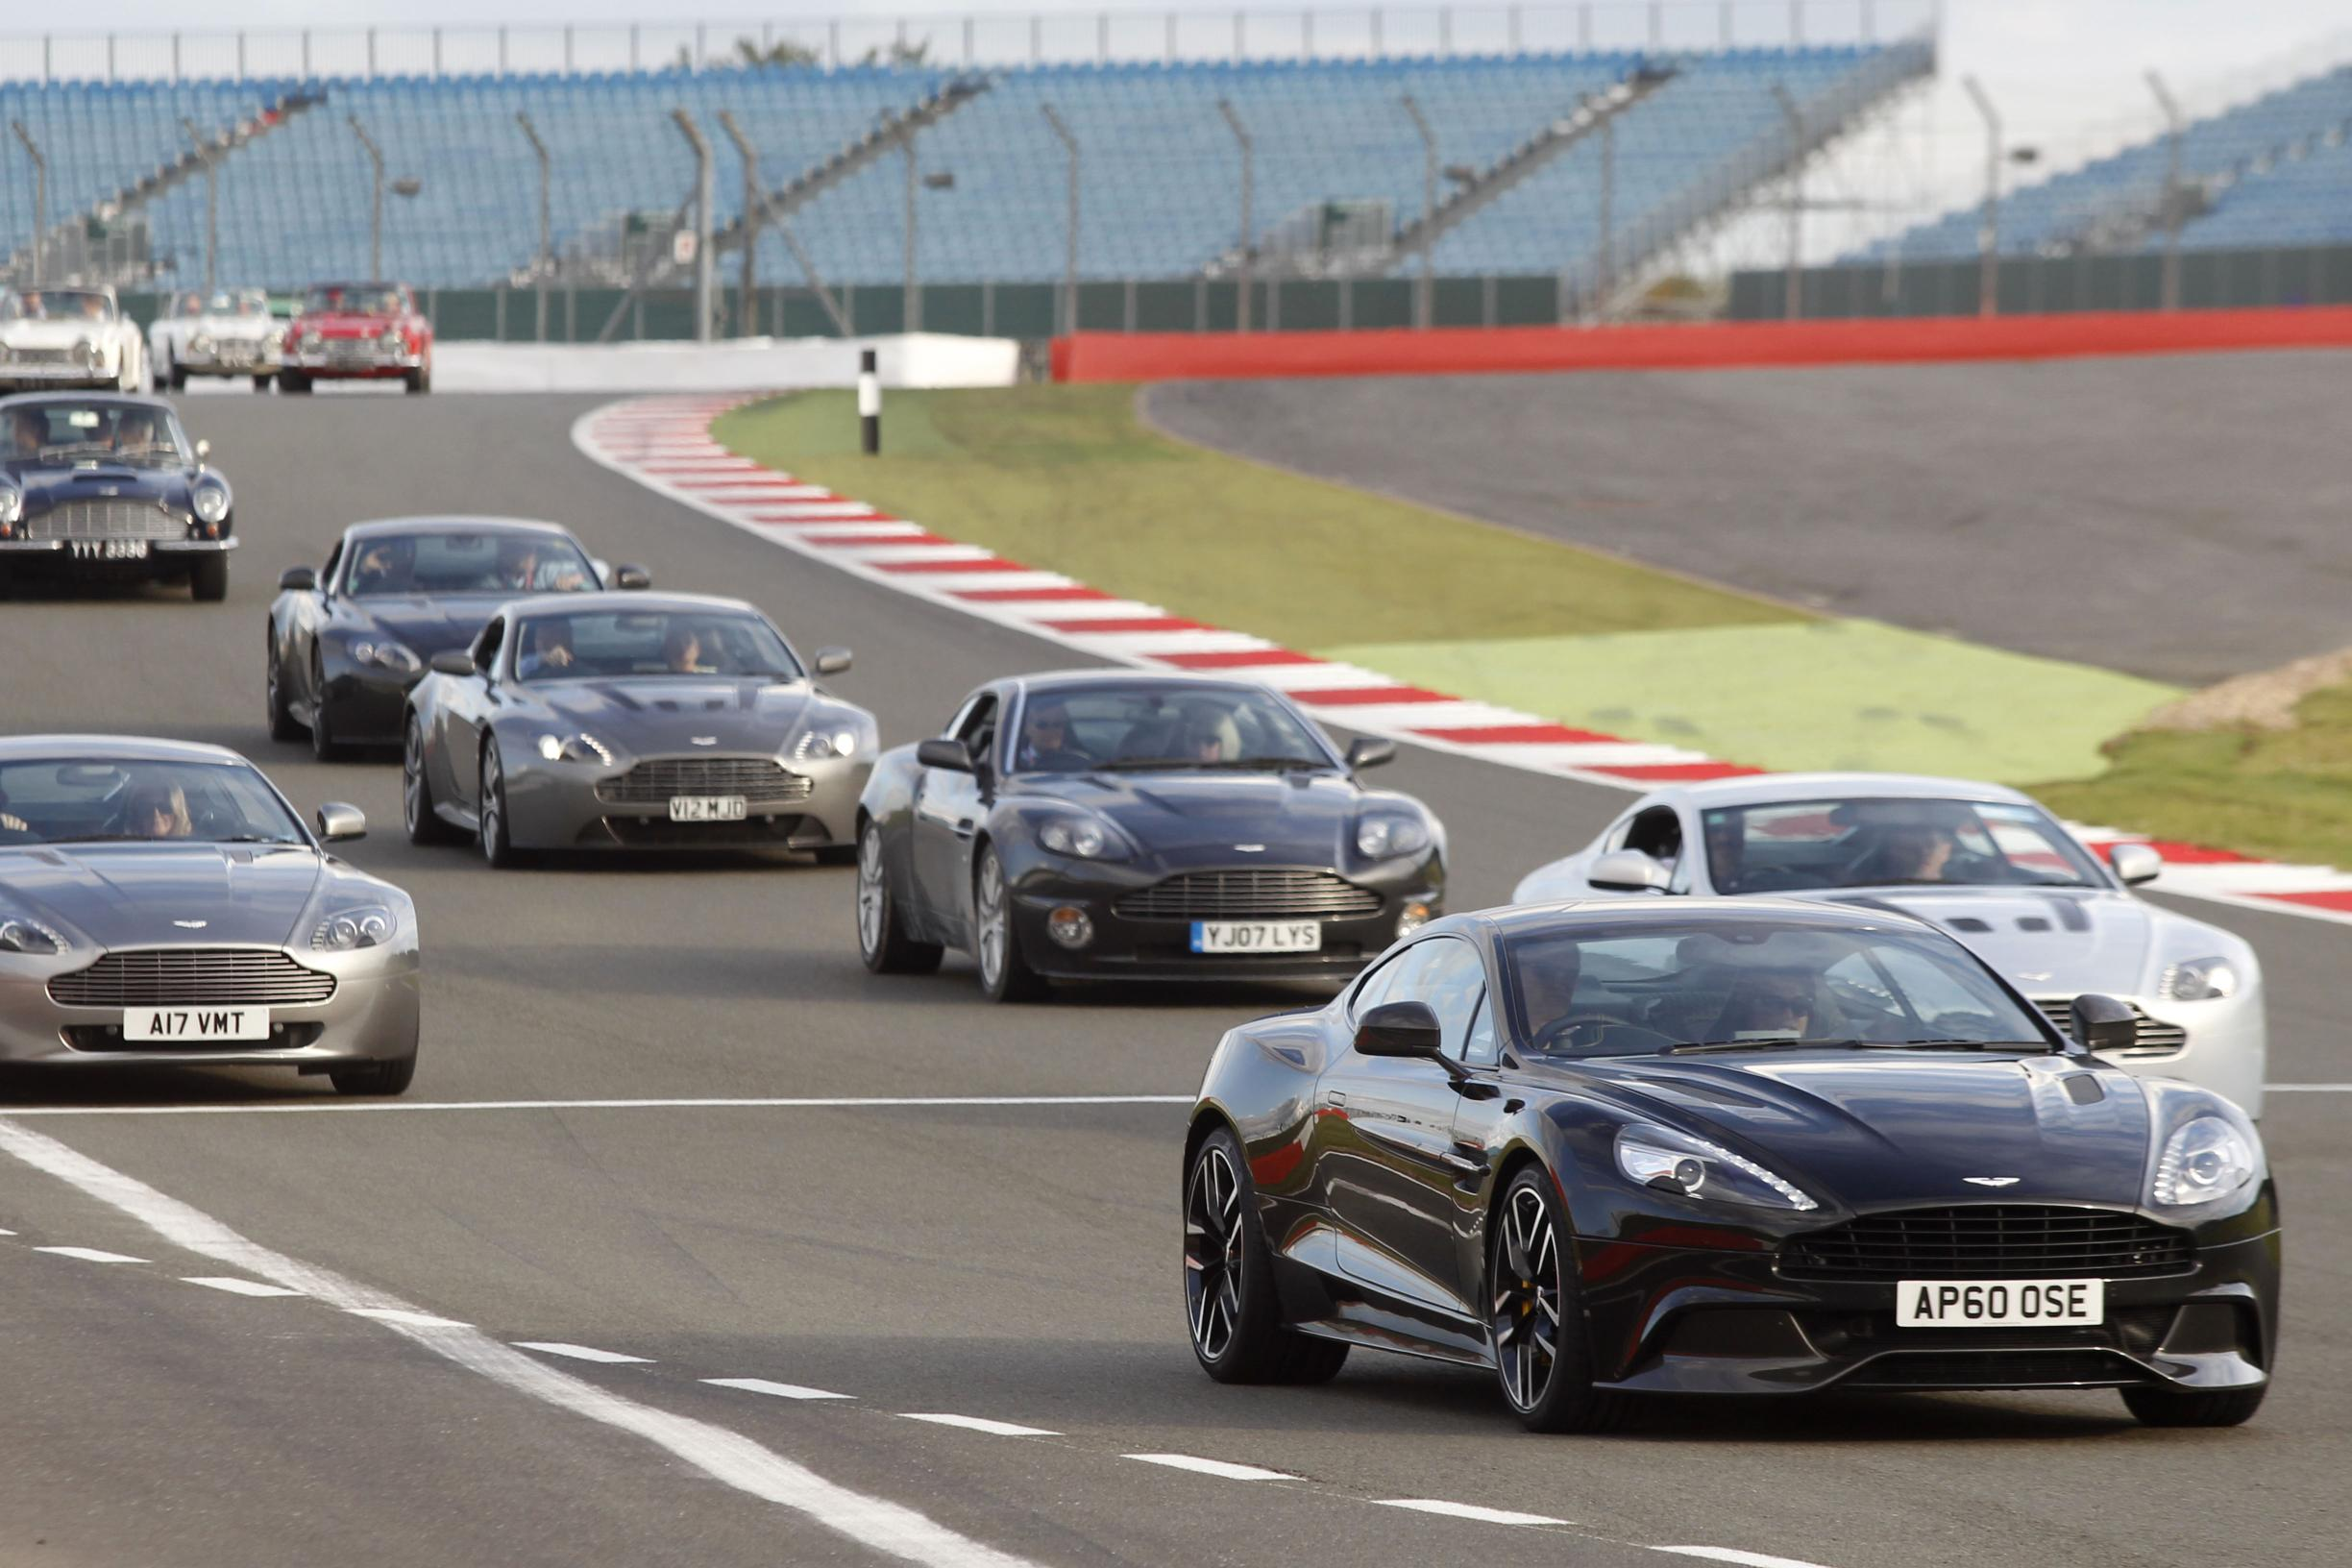 Aston Martin at Silverstone Classic Anniversary - Just British